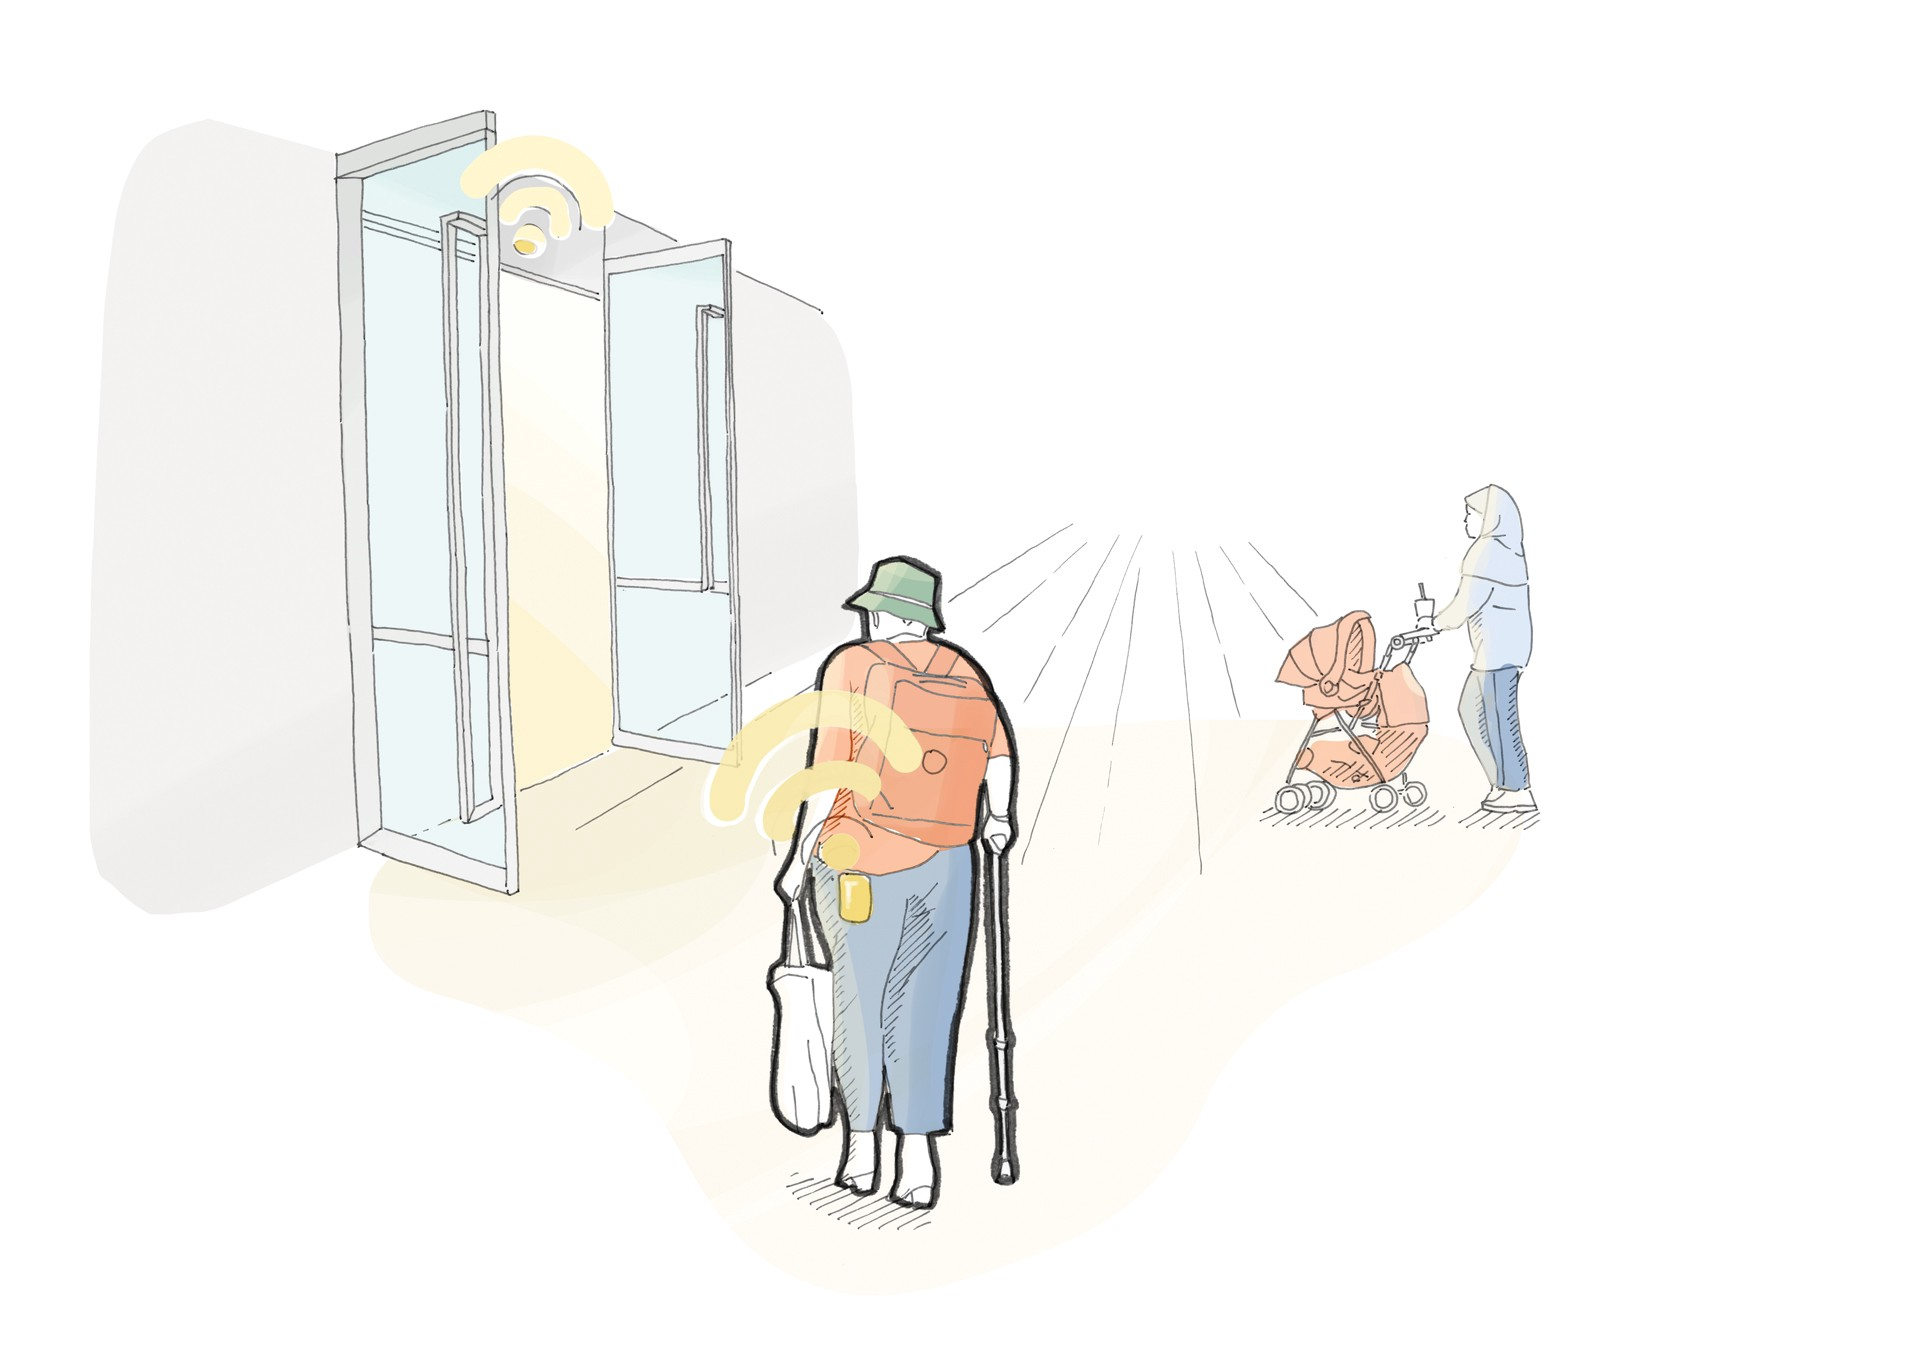 An illustration shows a person entering a building without push buttons or fob keys.